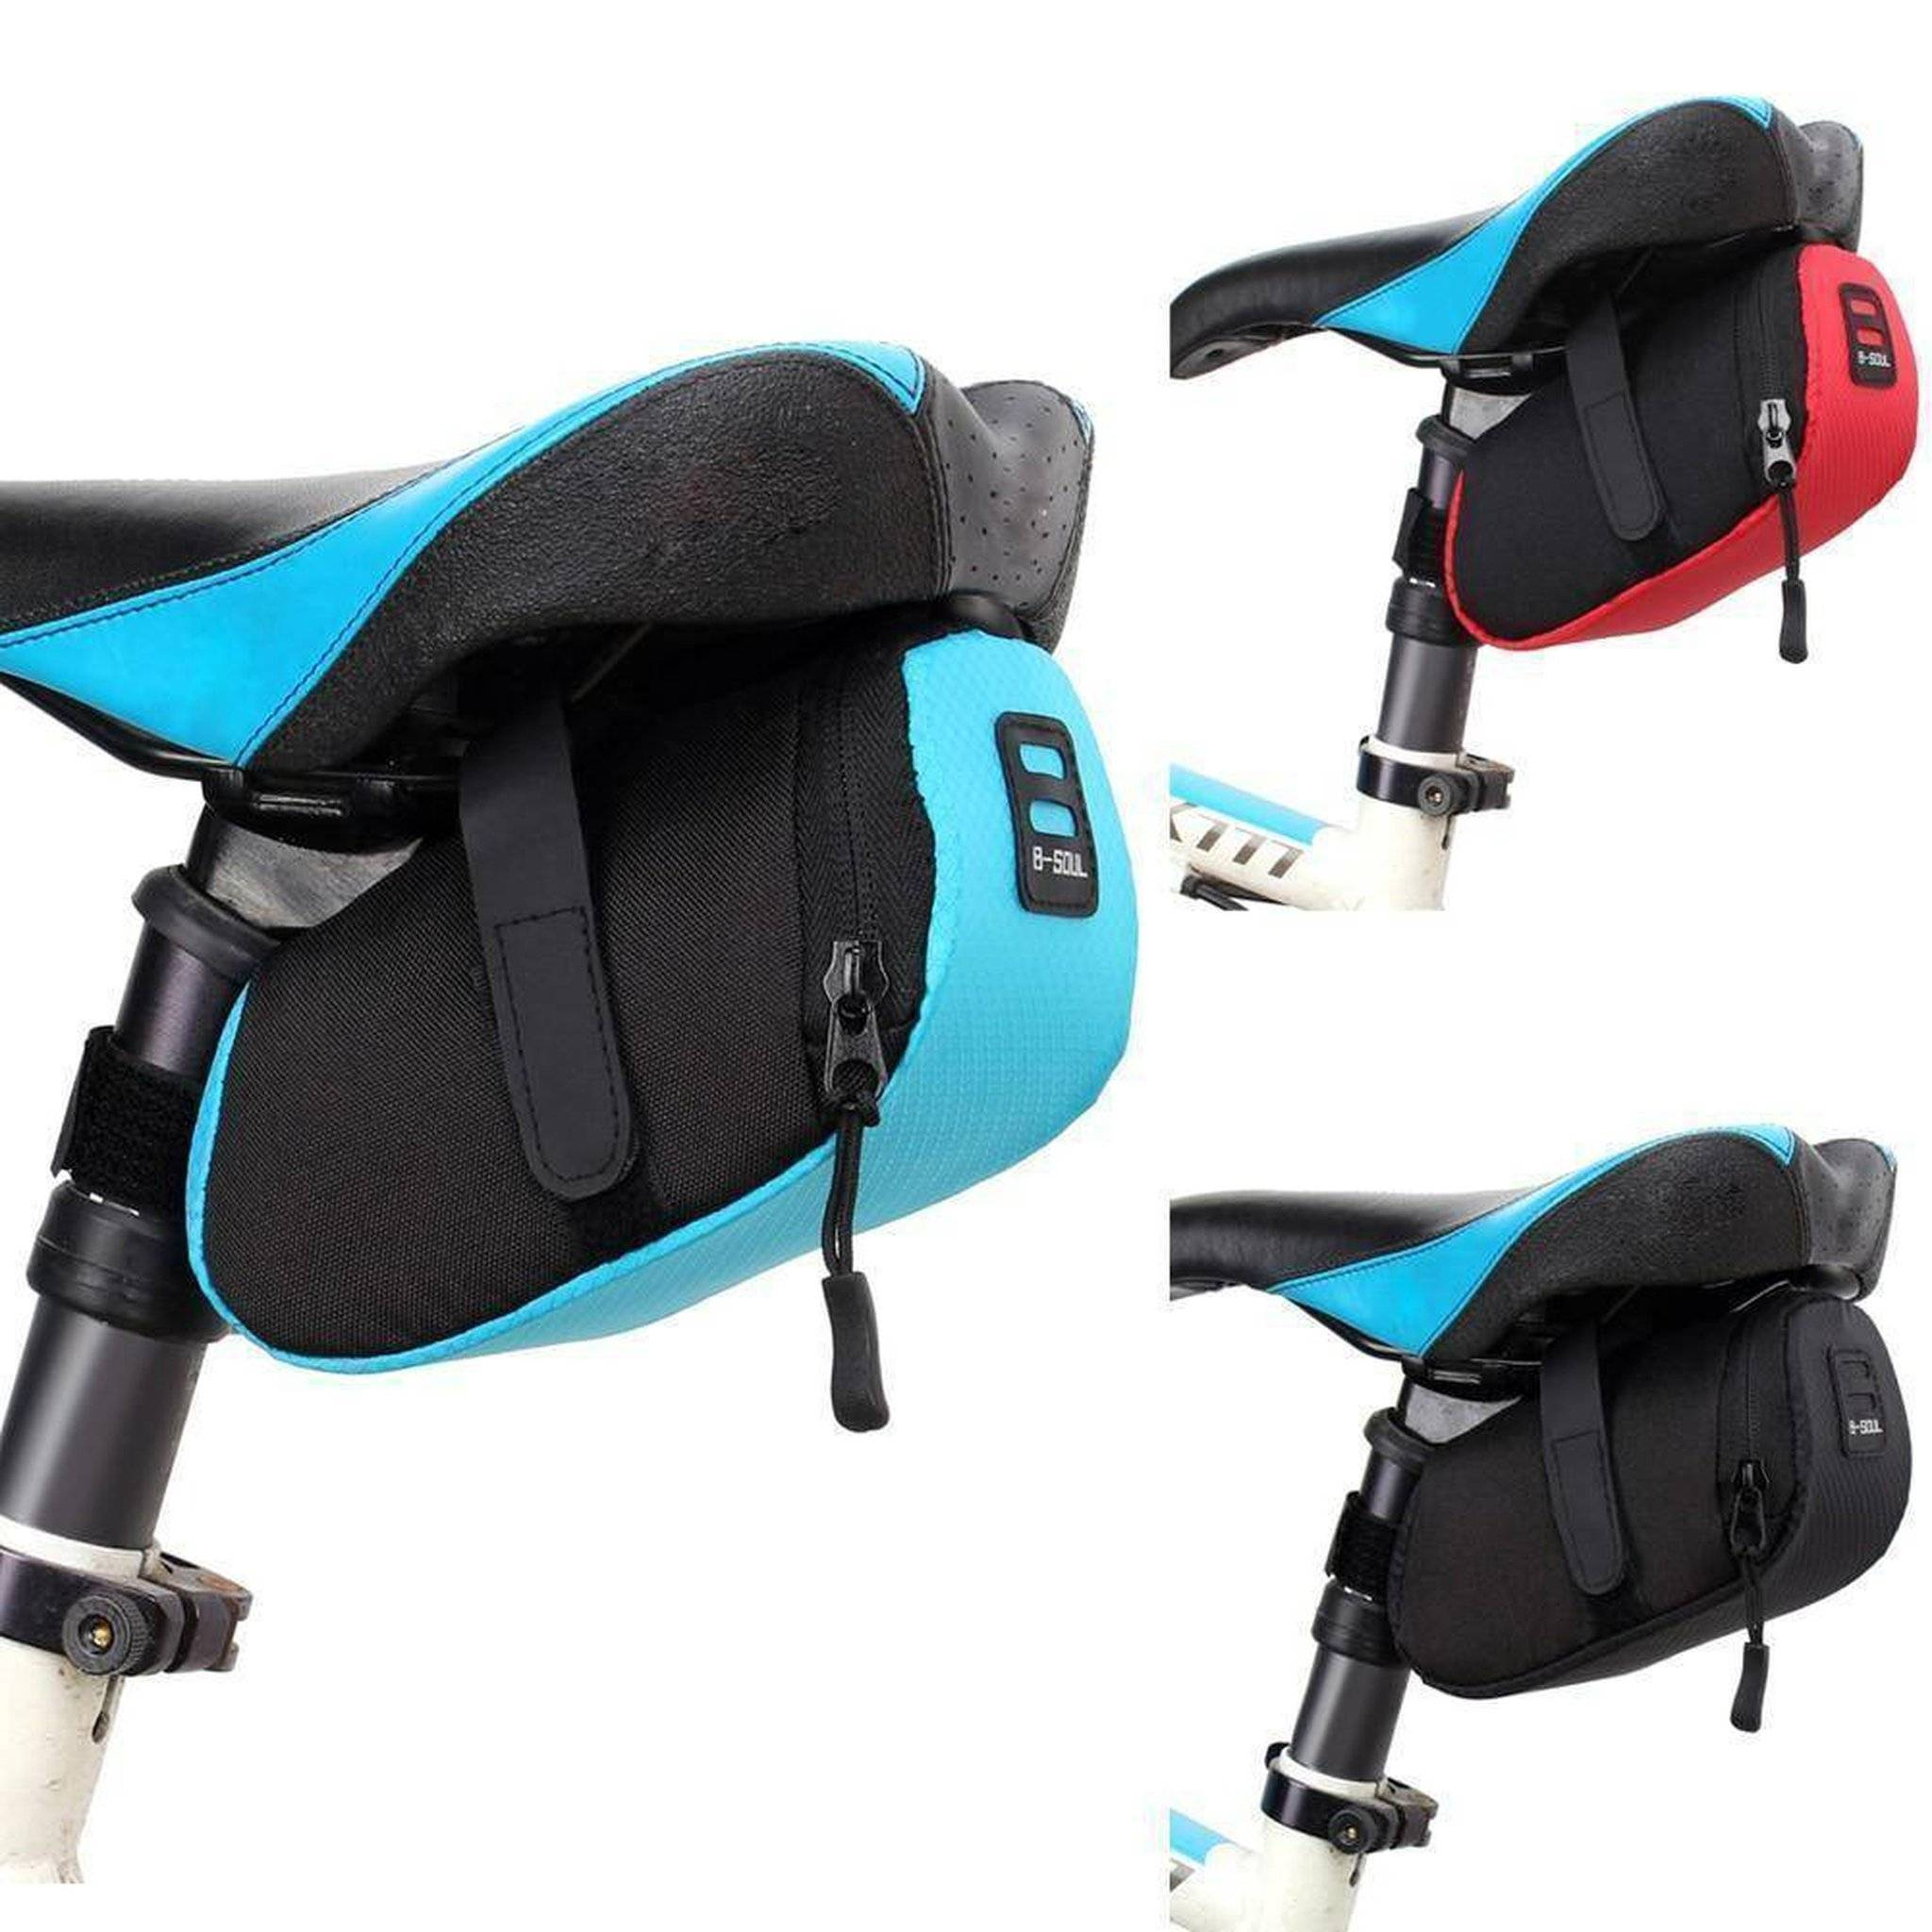 Bicycle Saddle Bag for $15.99